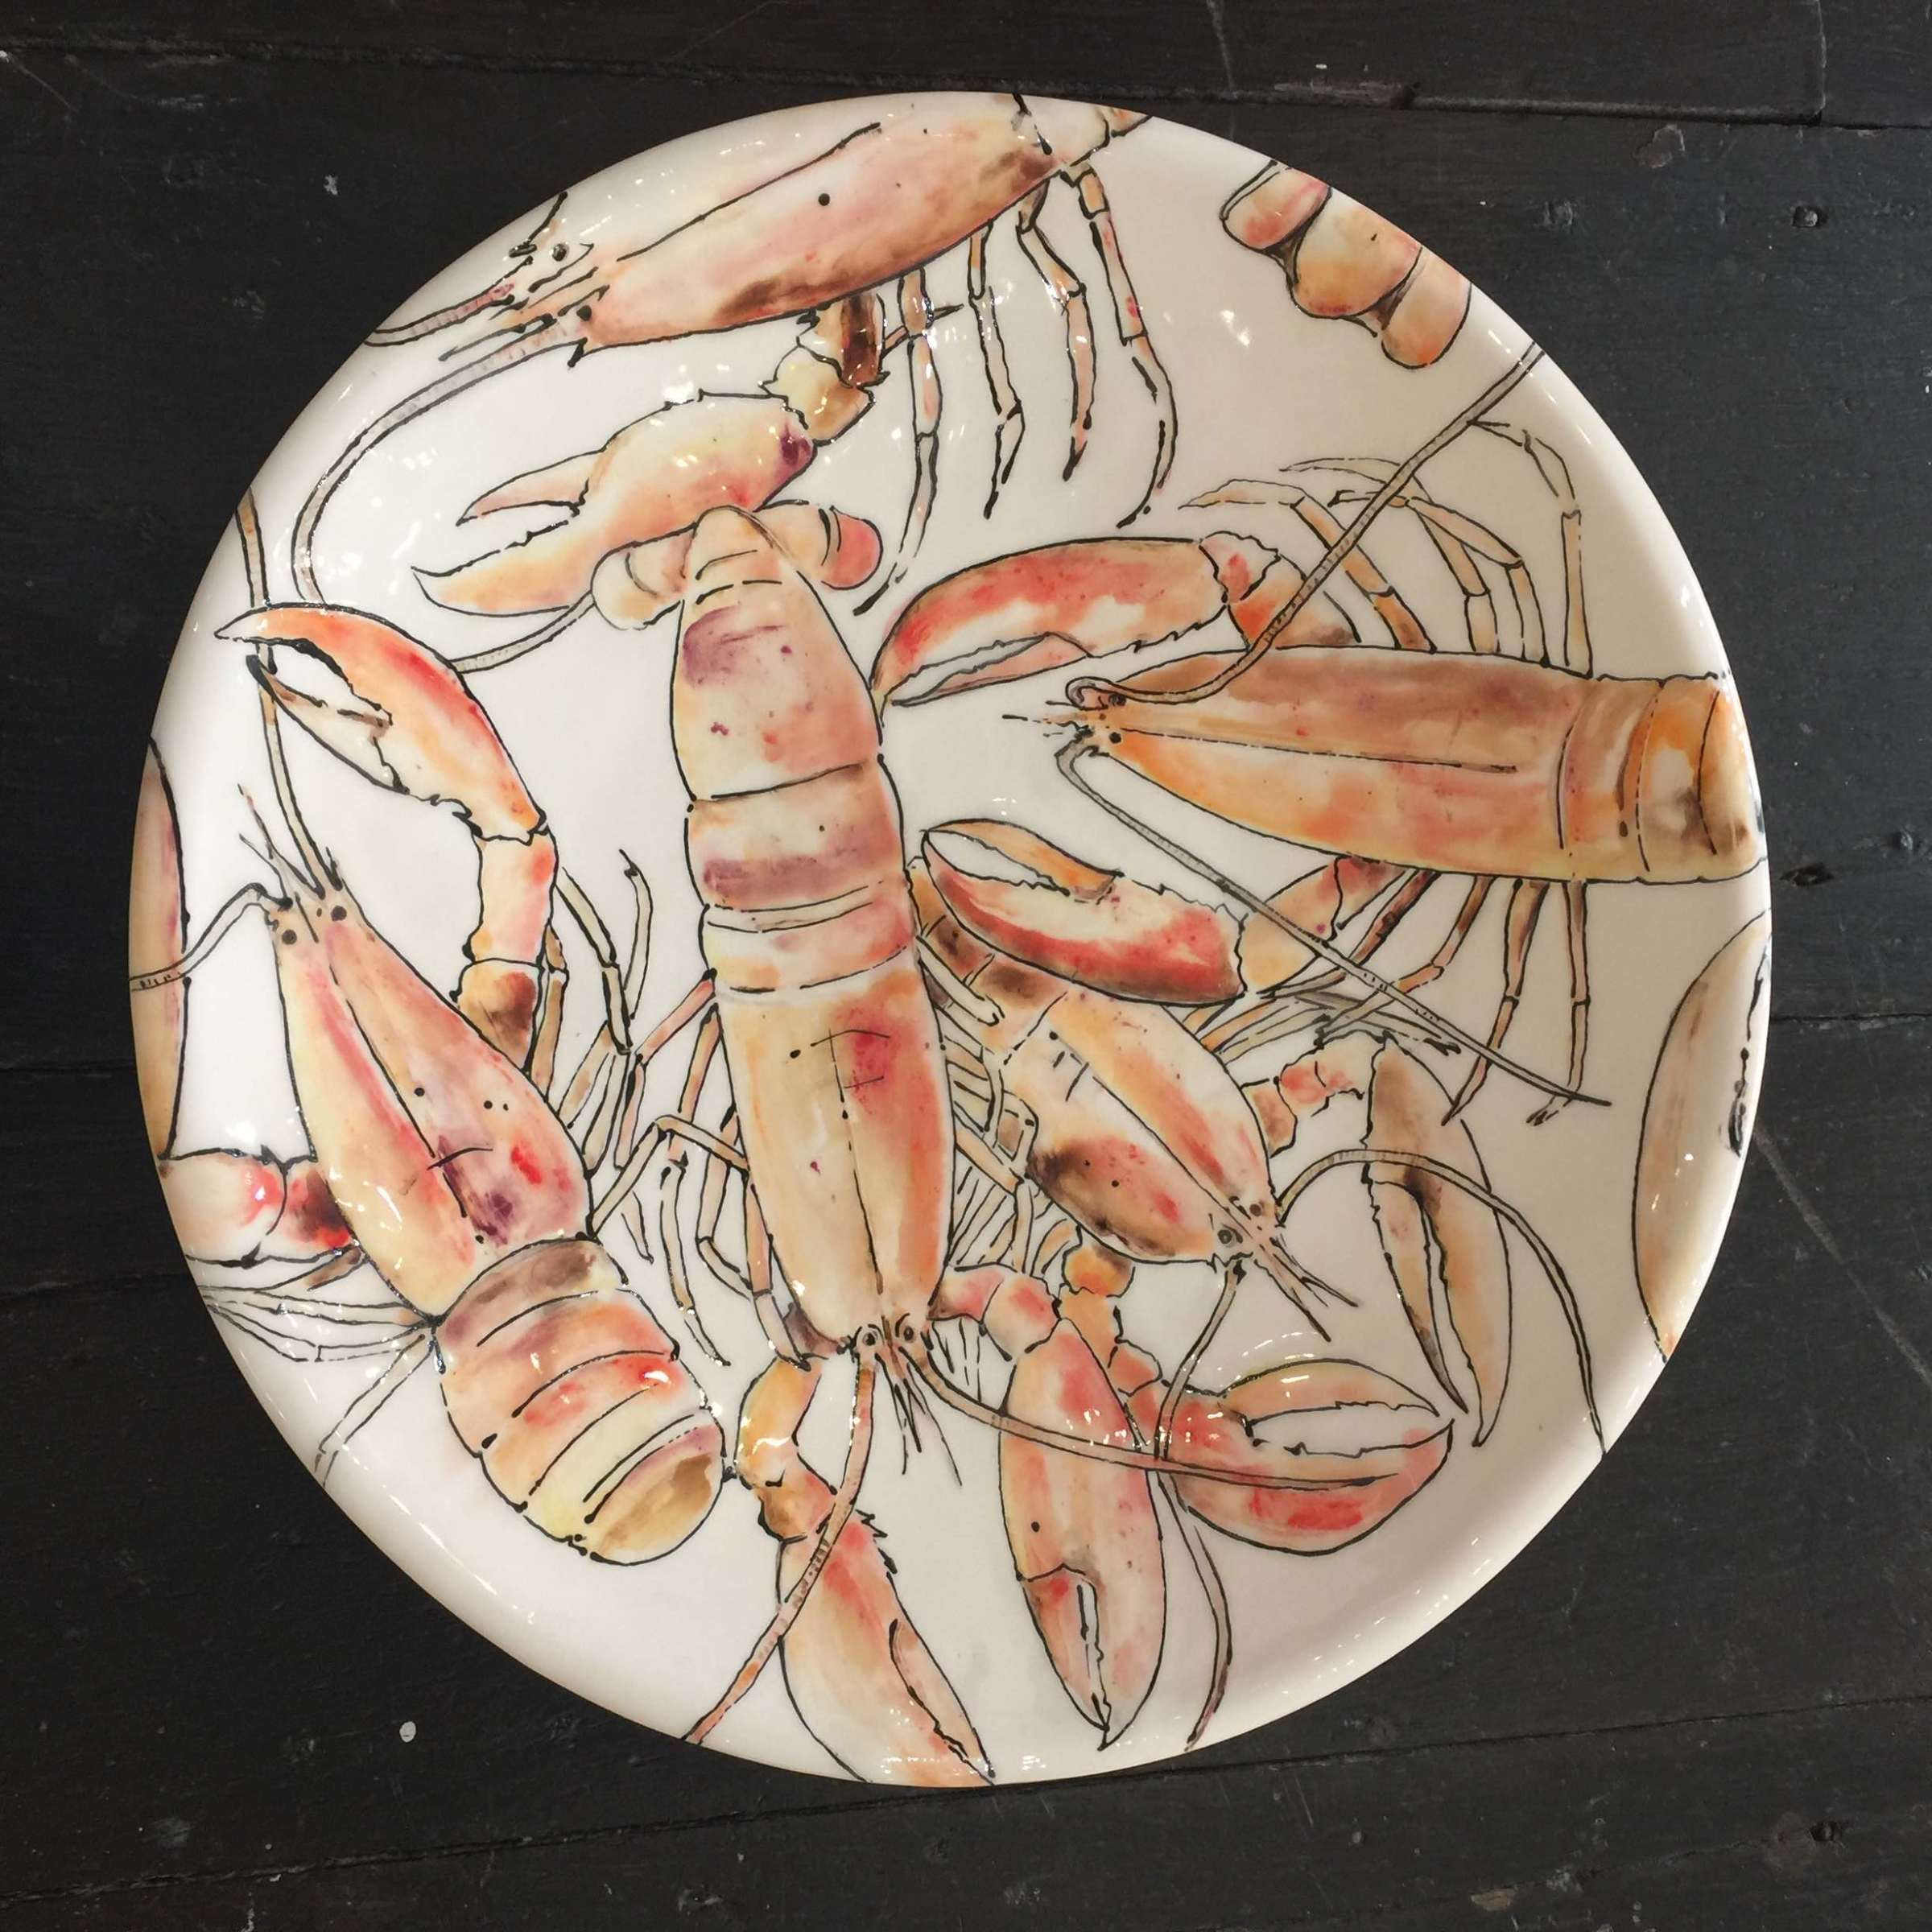 <span class=&#34;link fancybox-details-link&#34;><a href=&#34;/artists/33-kerry-edwards/works/2388-kerry-edwards-lobsters/&#34;>View Detail Page</a></span><div class=&#34;artist&#34;><strong>Kerry Edwards</strong></div> <div class=&#34;title&#34;><em>Lobsters</em></div> <div class=&#34;medium&#34;>Ceramic</div> <div class=&#34;dimensions&#34;>43 cm diameter</div><div class=&#34;price&#34;>£195.00</div><div class=&#34;copyright_line&#34;>Copyright The Artist</div>